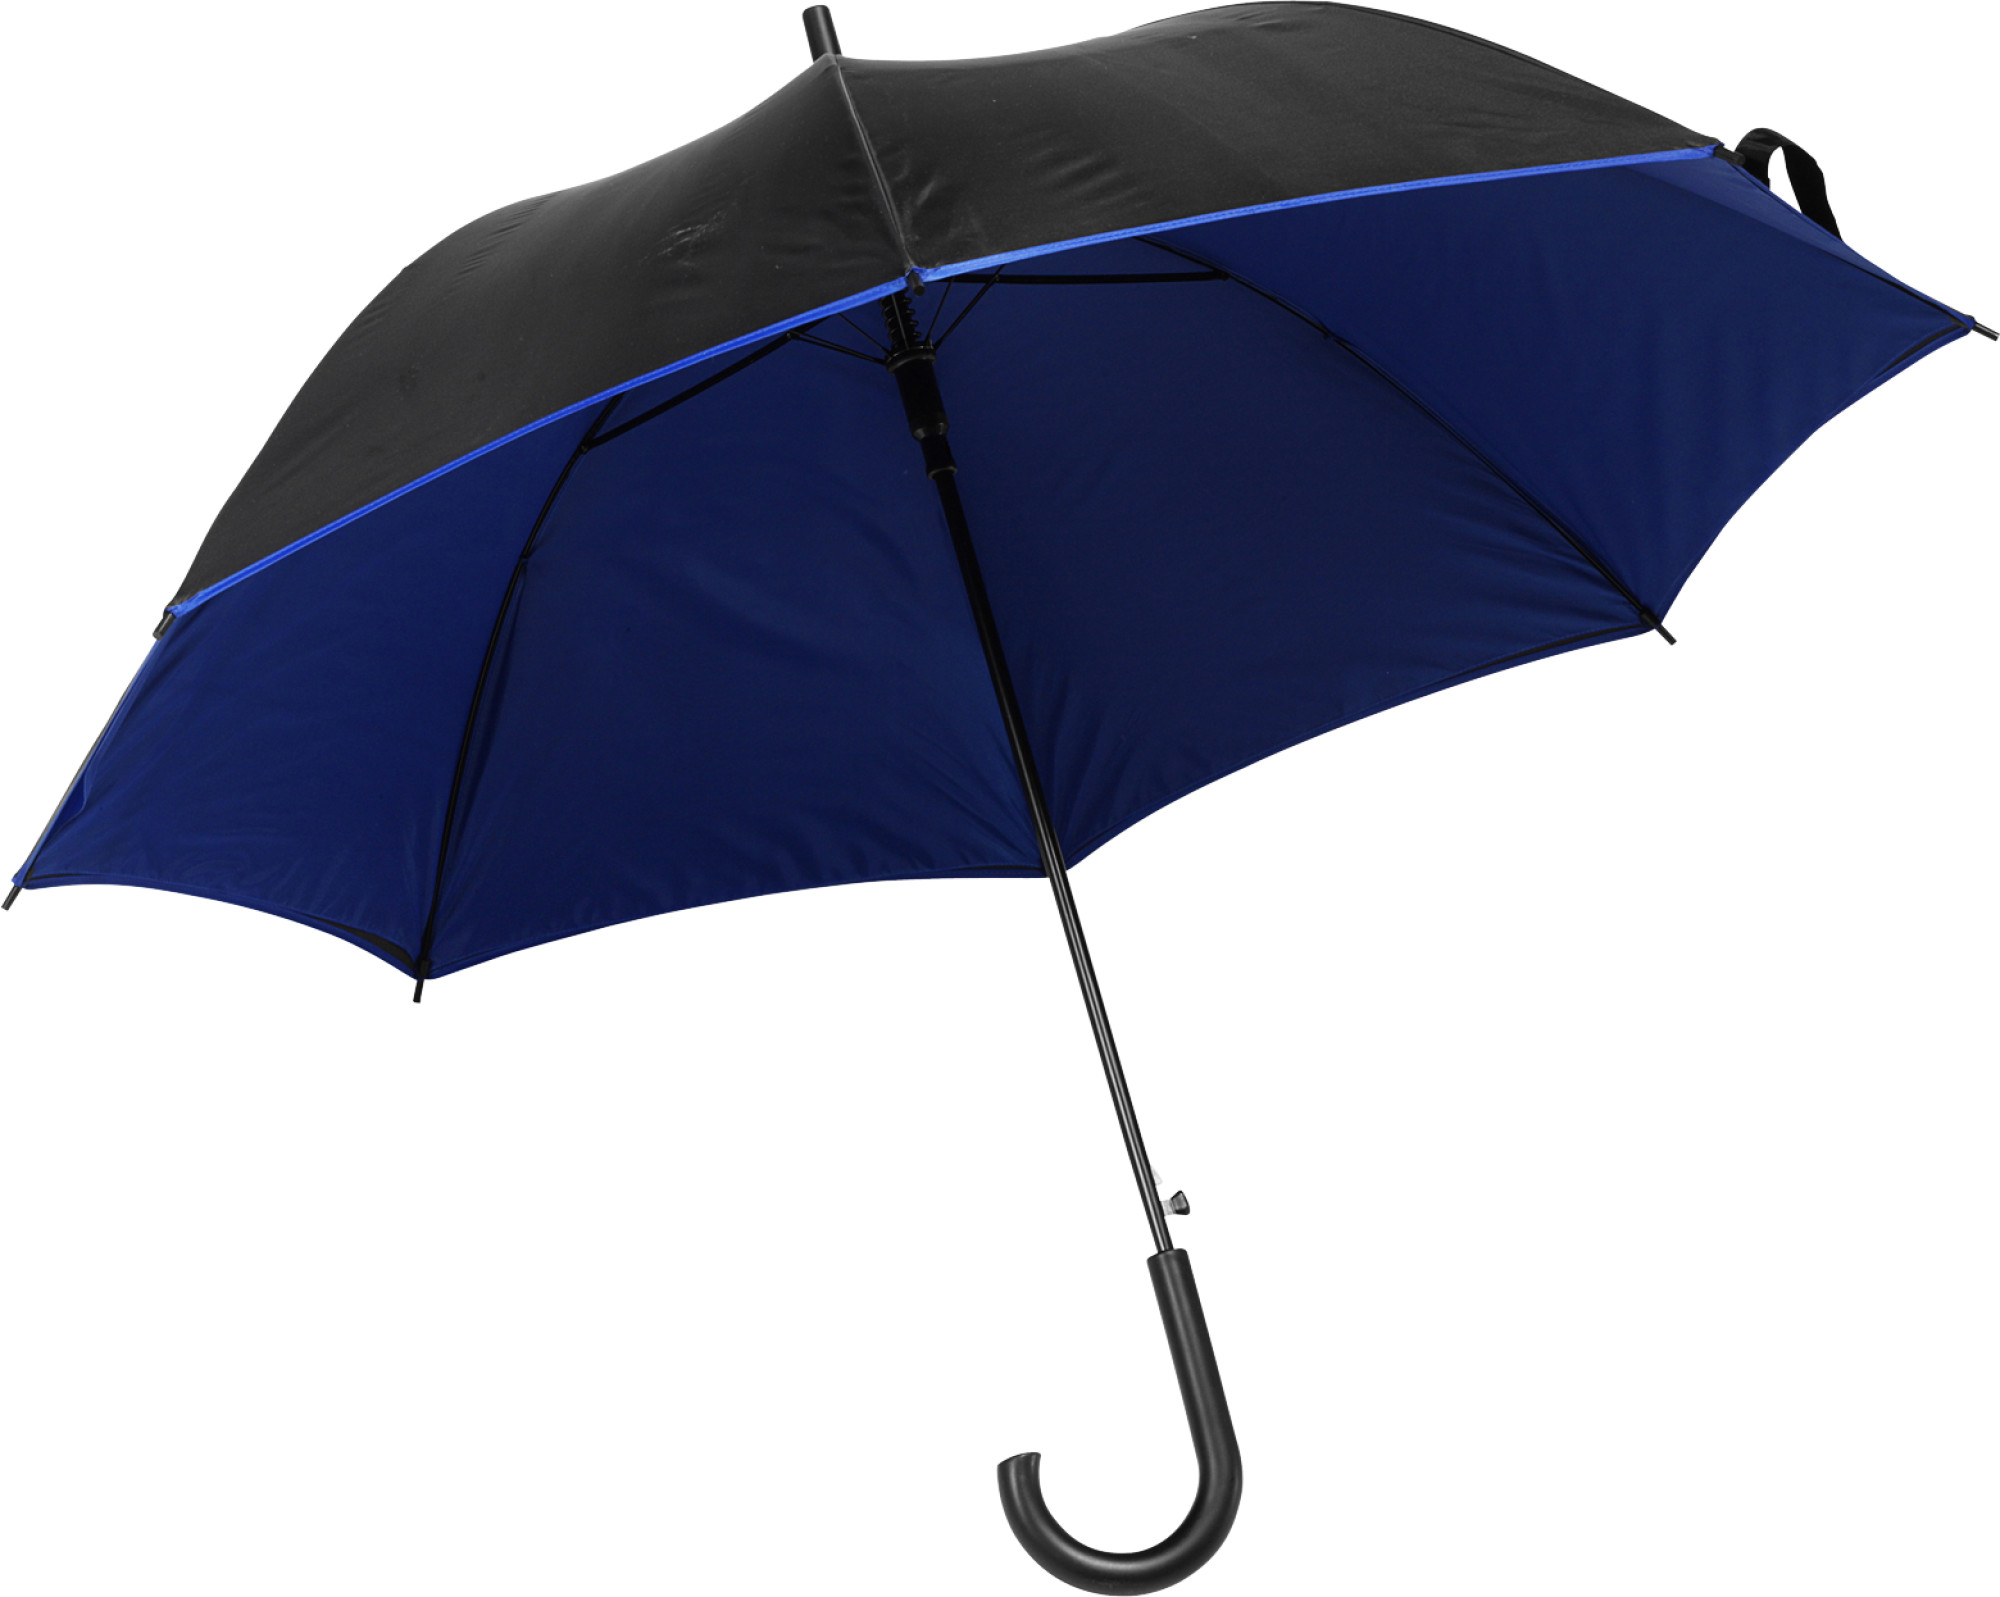 Promotional Umbrella with automatic opening.